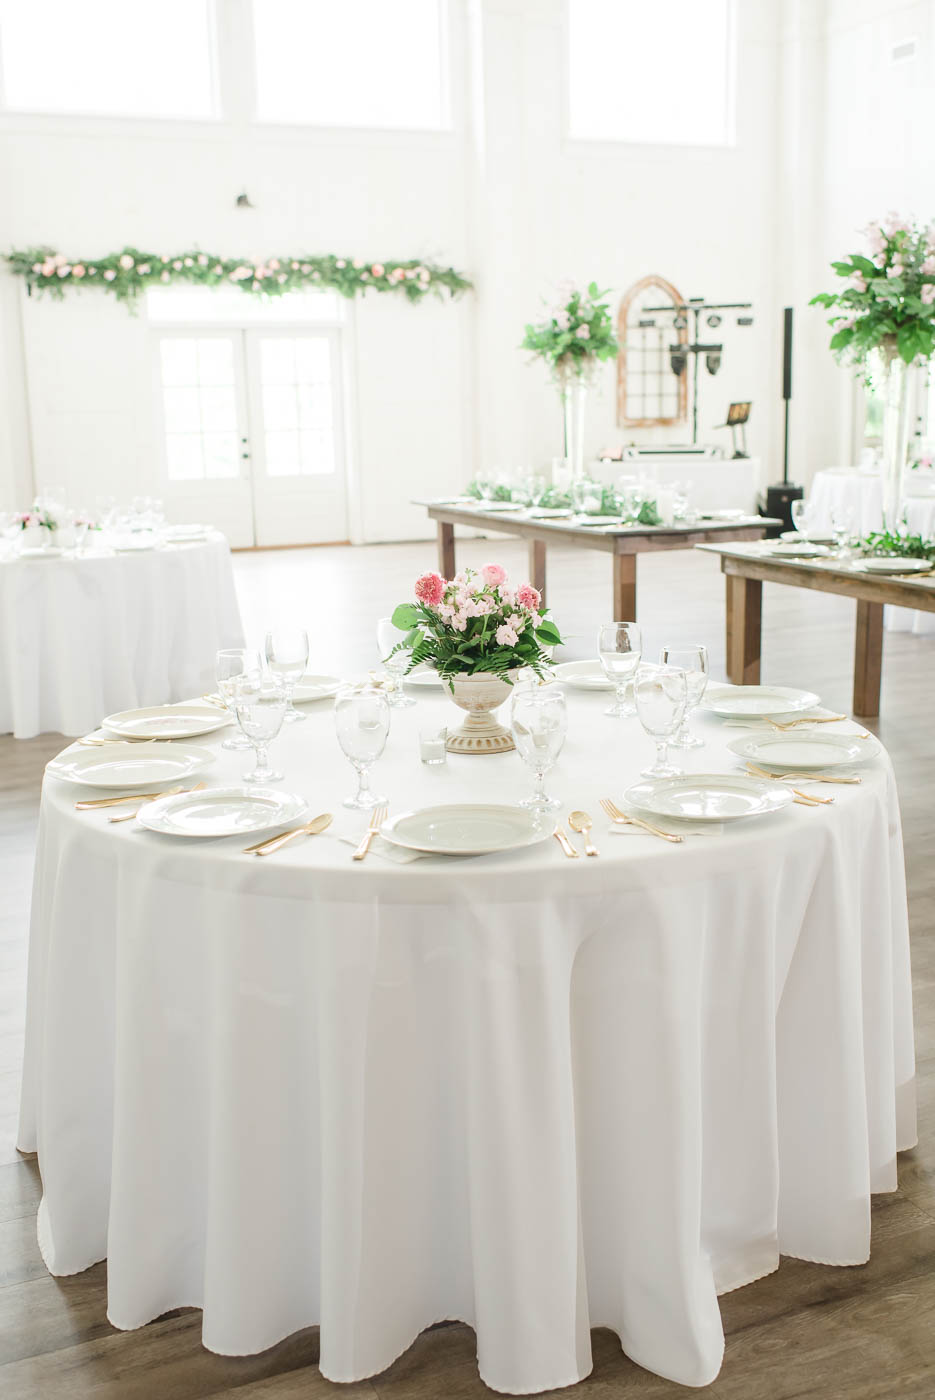 long white table clothes at wedding reception